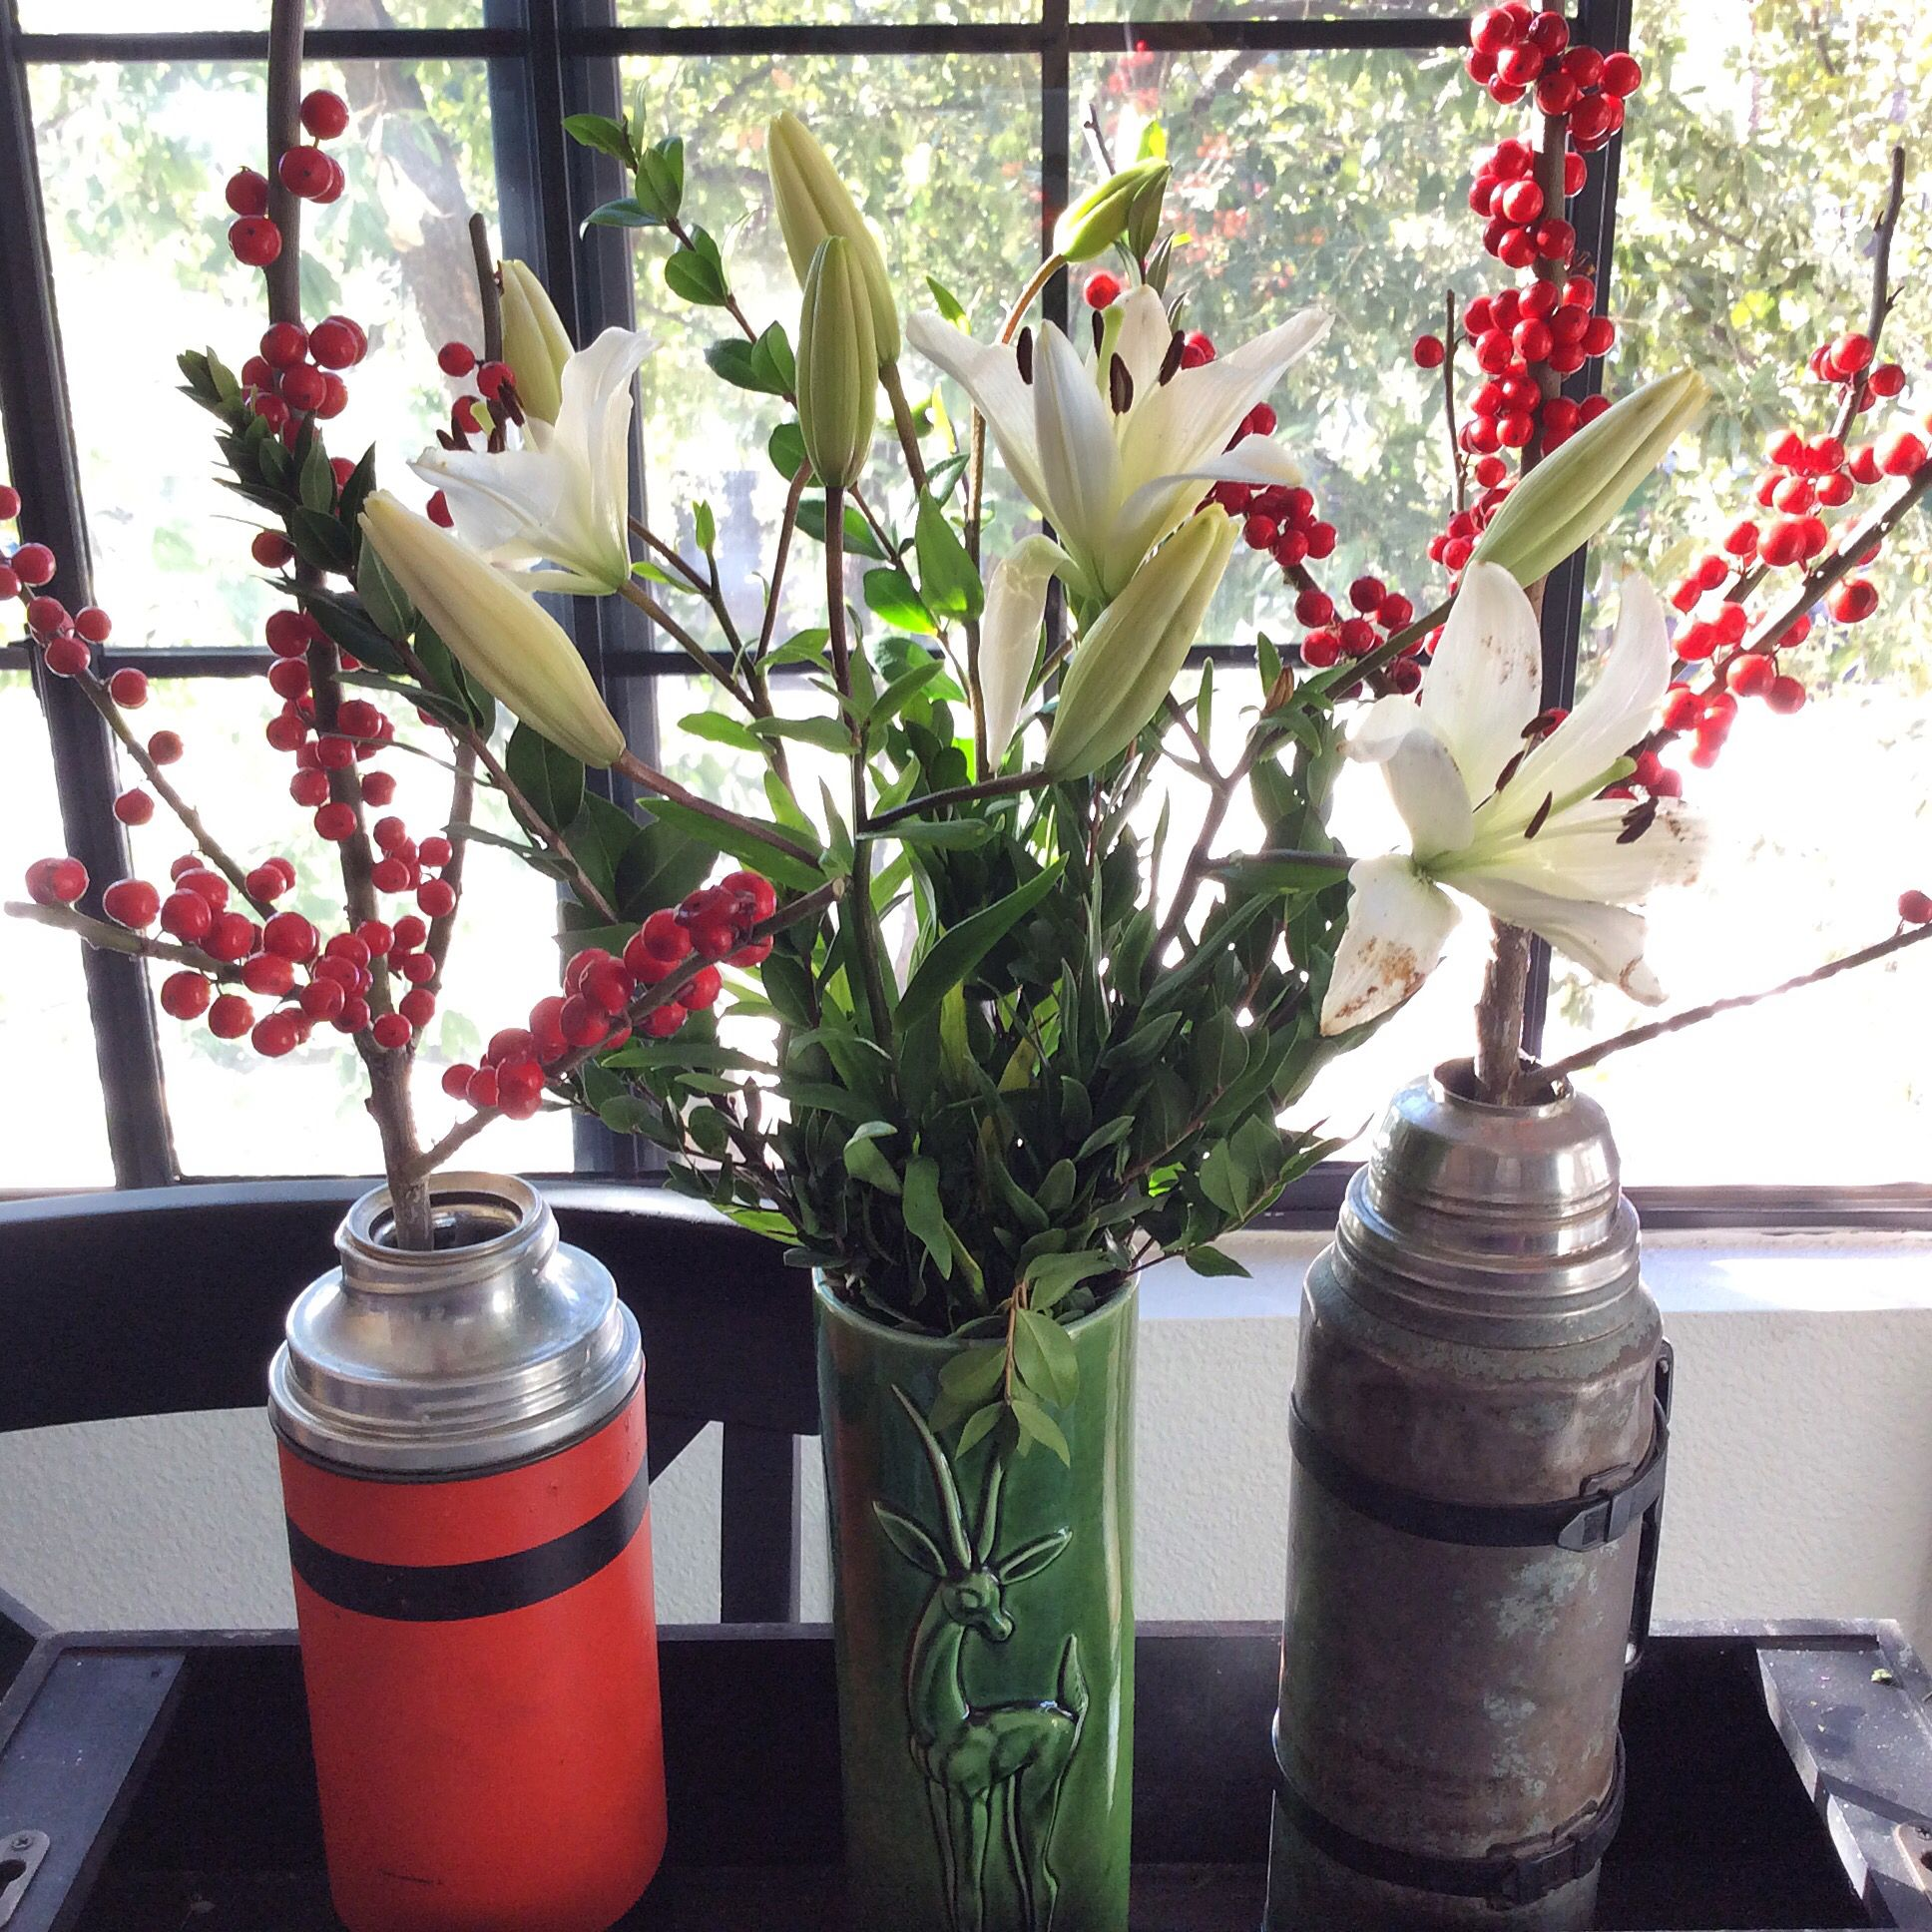 Vintage thermoses & vase with fresh flowers from Trader Joes.